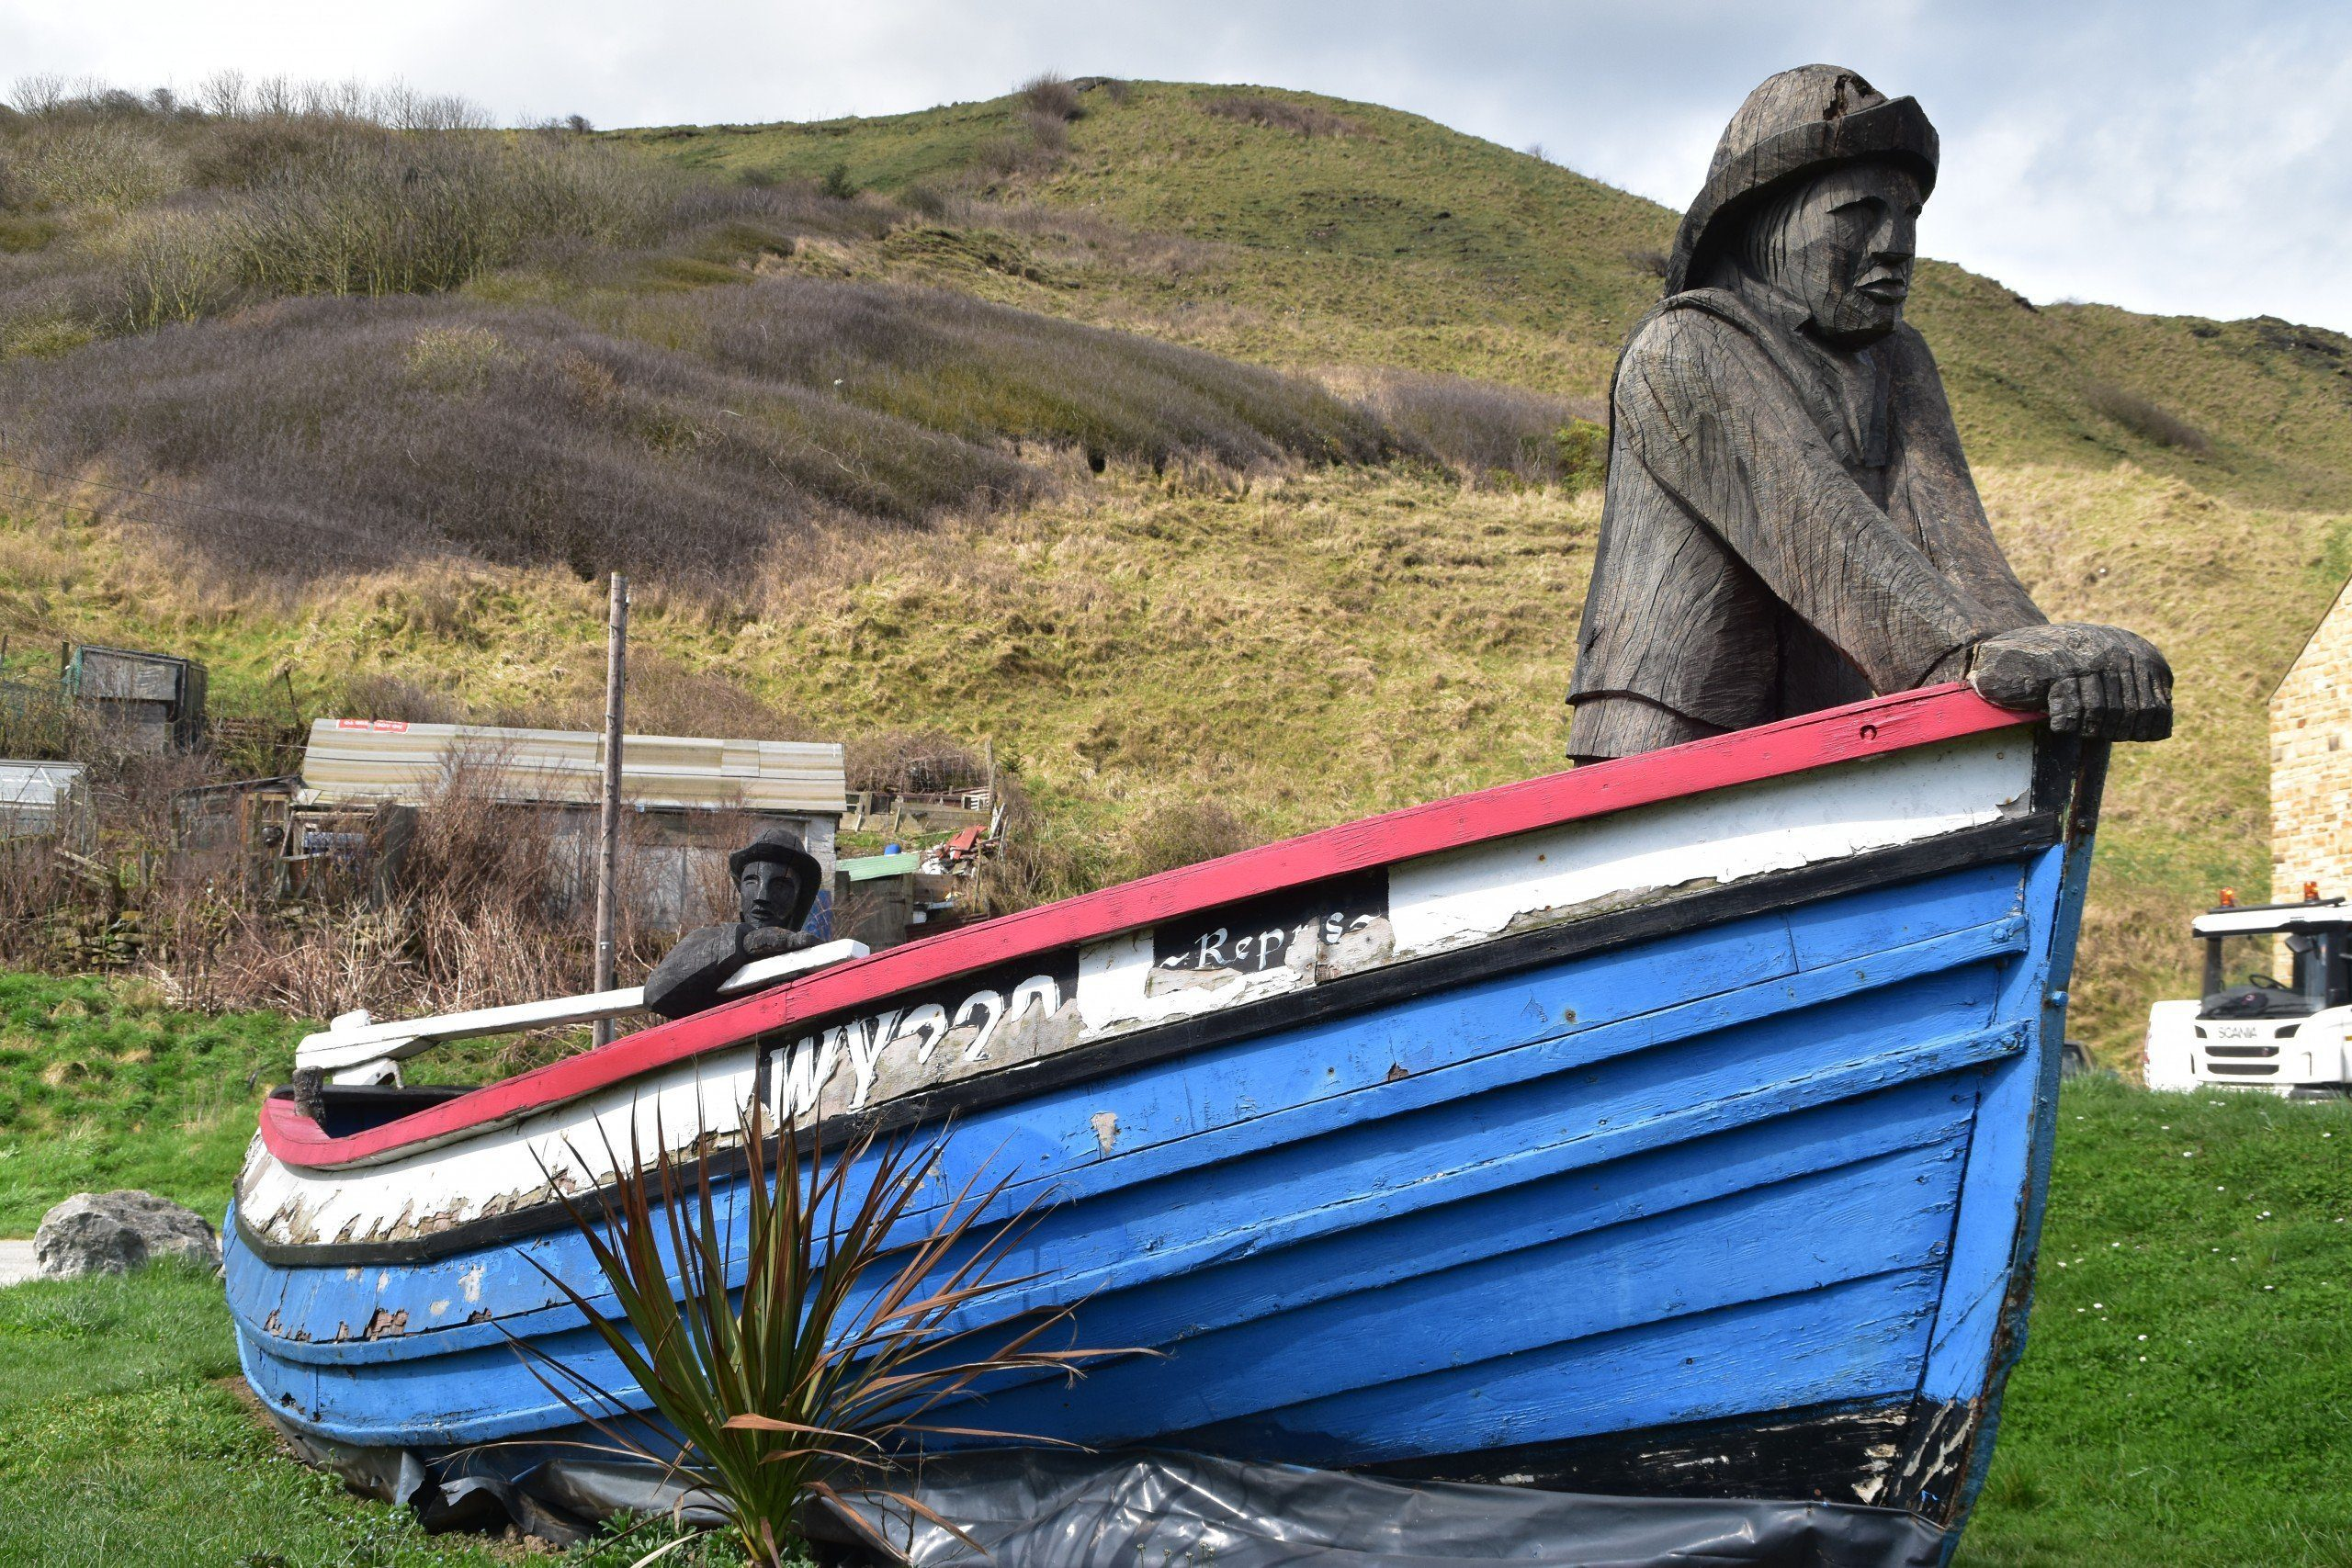 The Repus Sculpture at Skinningrove: sculptures of two wooden fishermen in what was a working fishing coble. One of the highlights of the latter half of the Cleveland Way